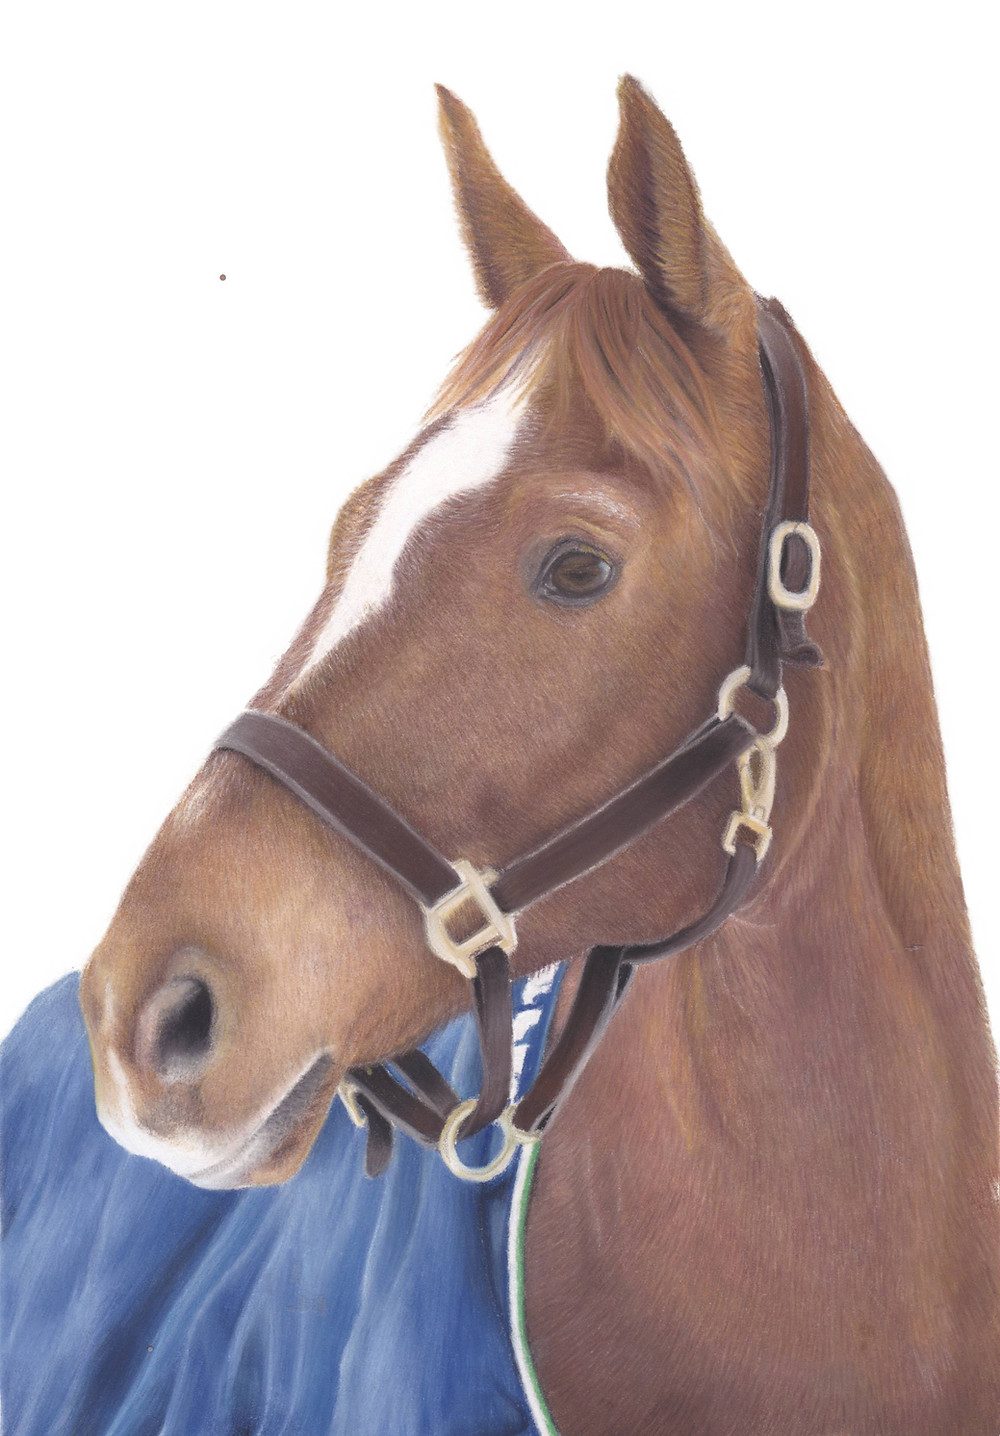 A chestnut horse with halter portrait drawing in pastel pencils